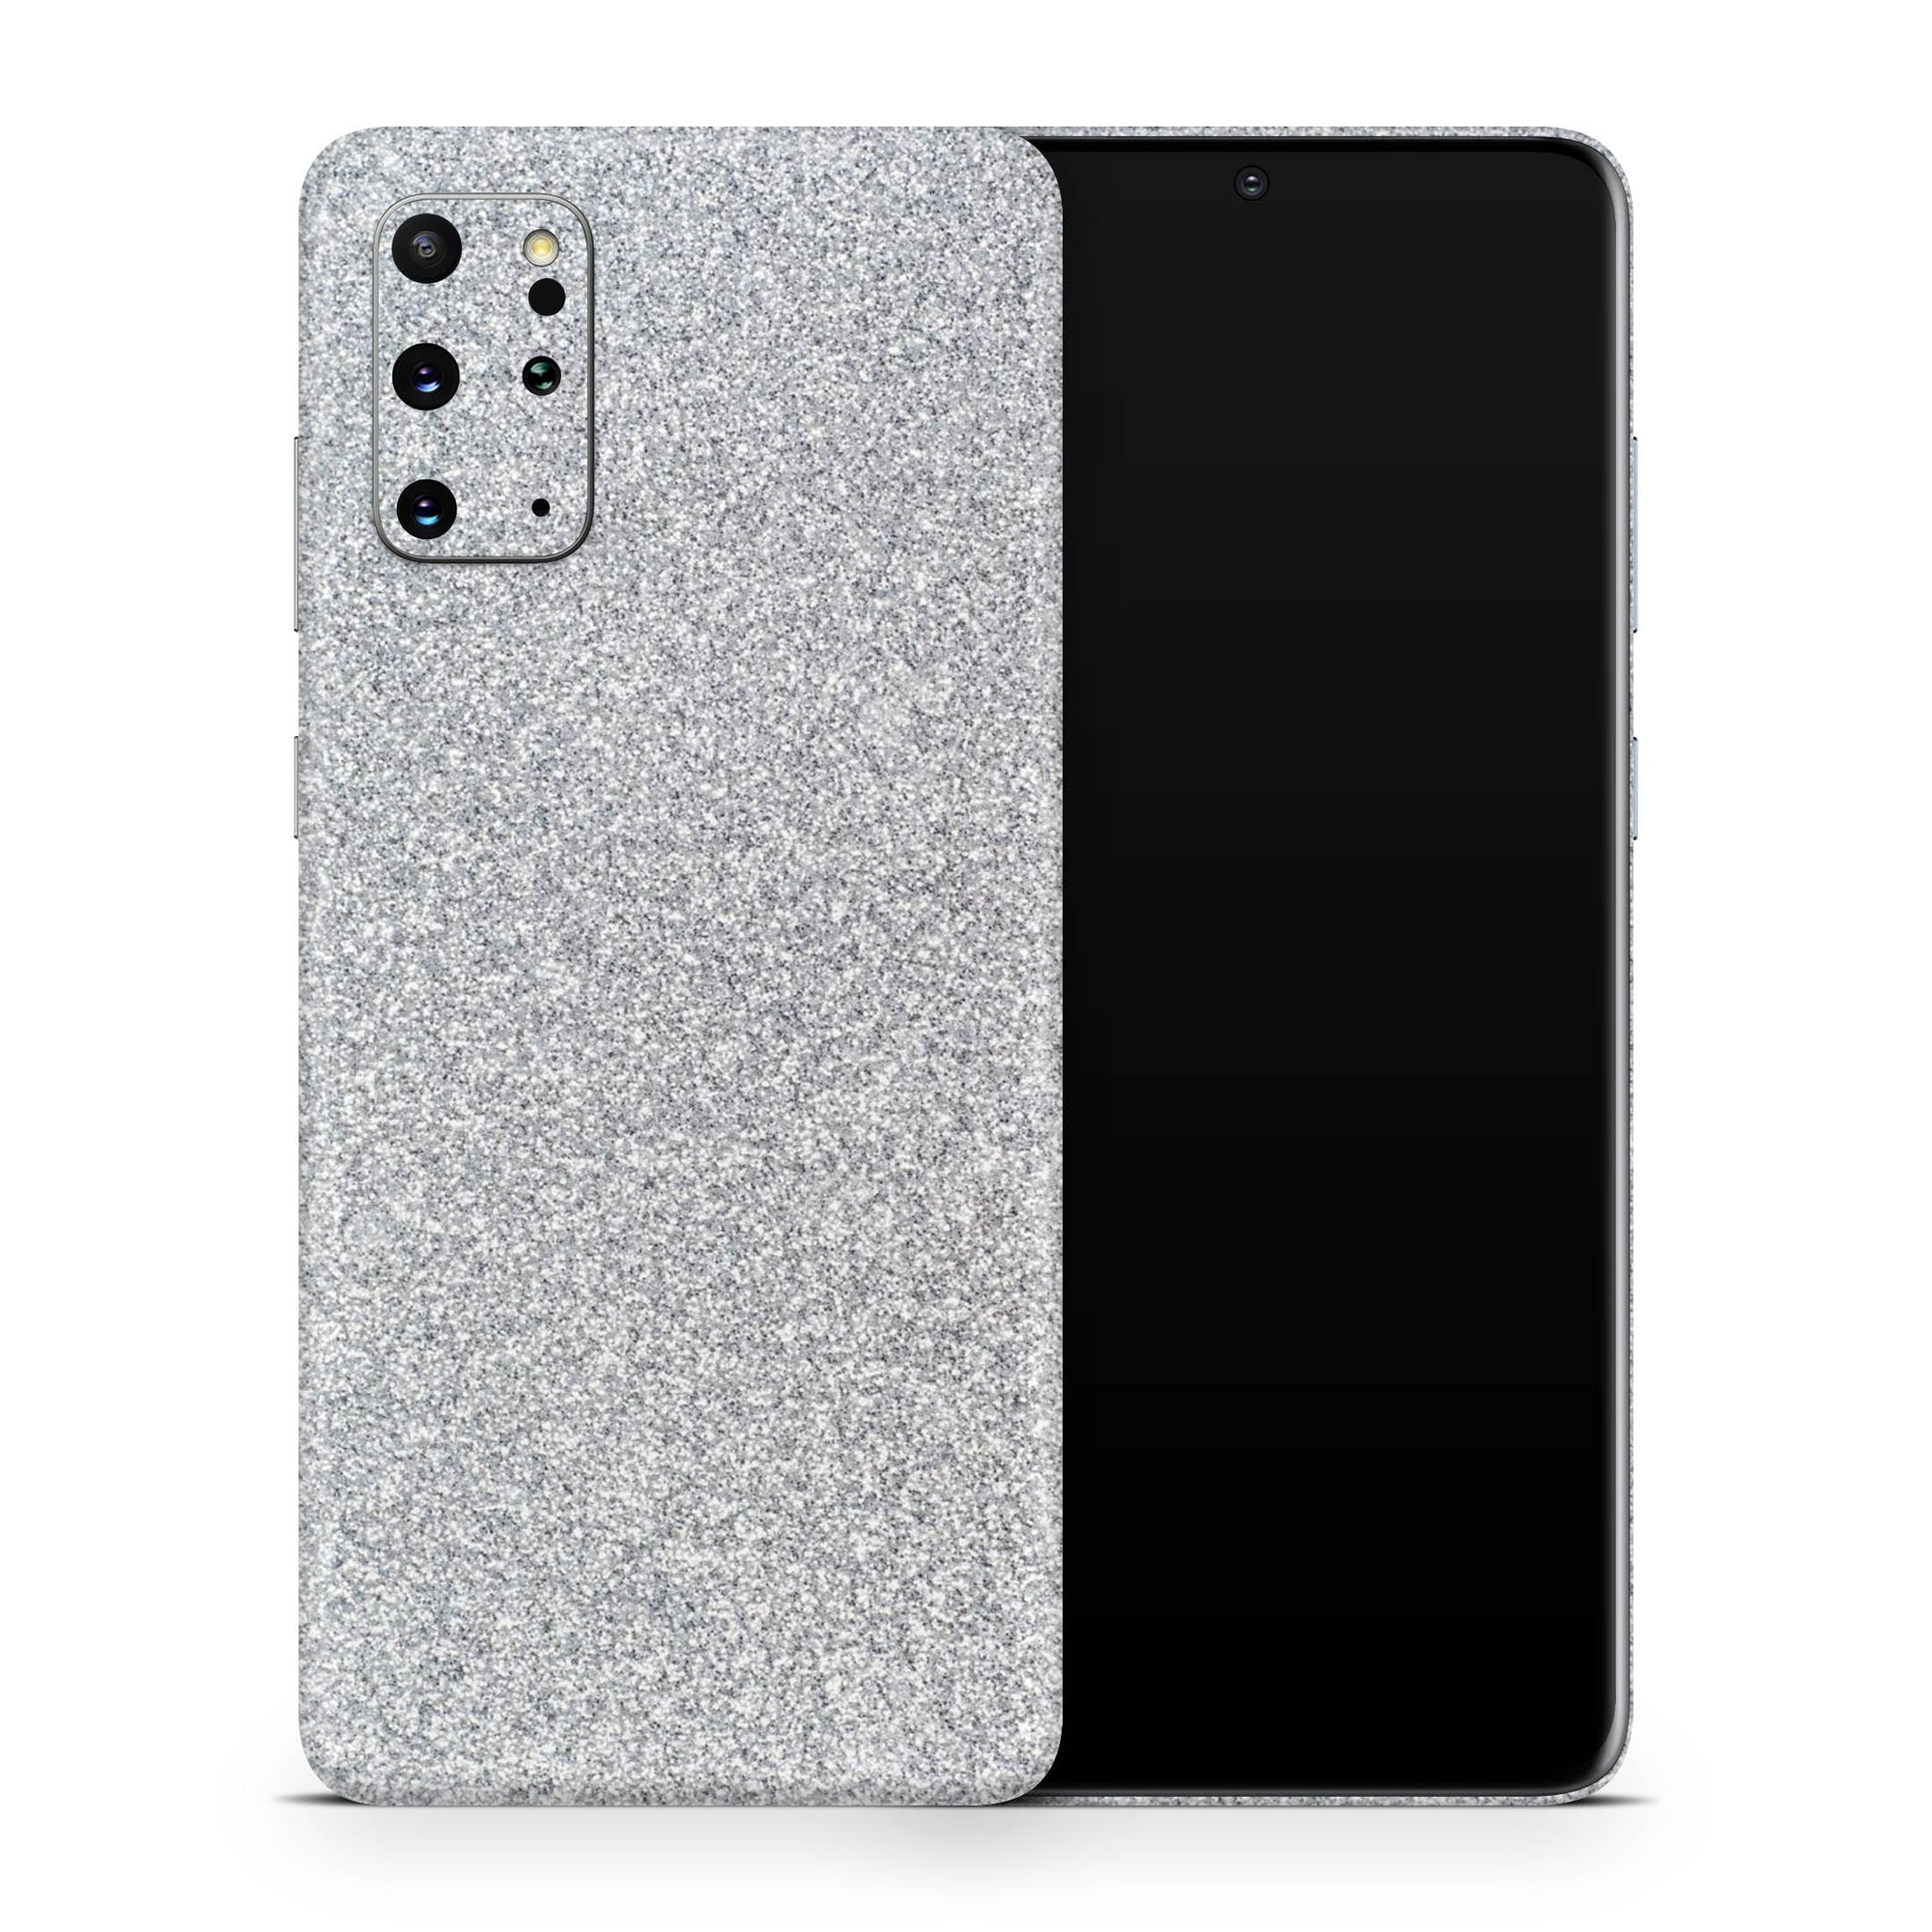 Blanc Glitter Galaxy S20 Ultra Skin + Case-Uniqfind